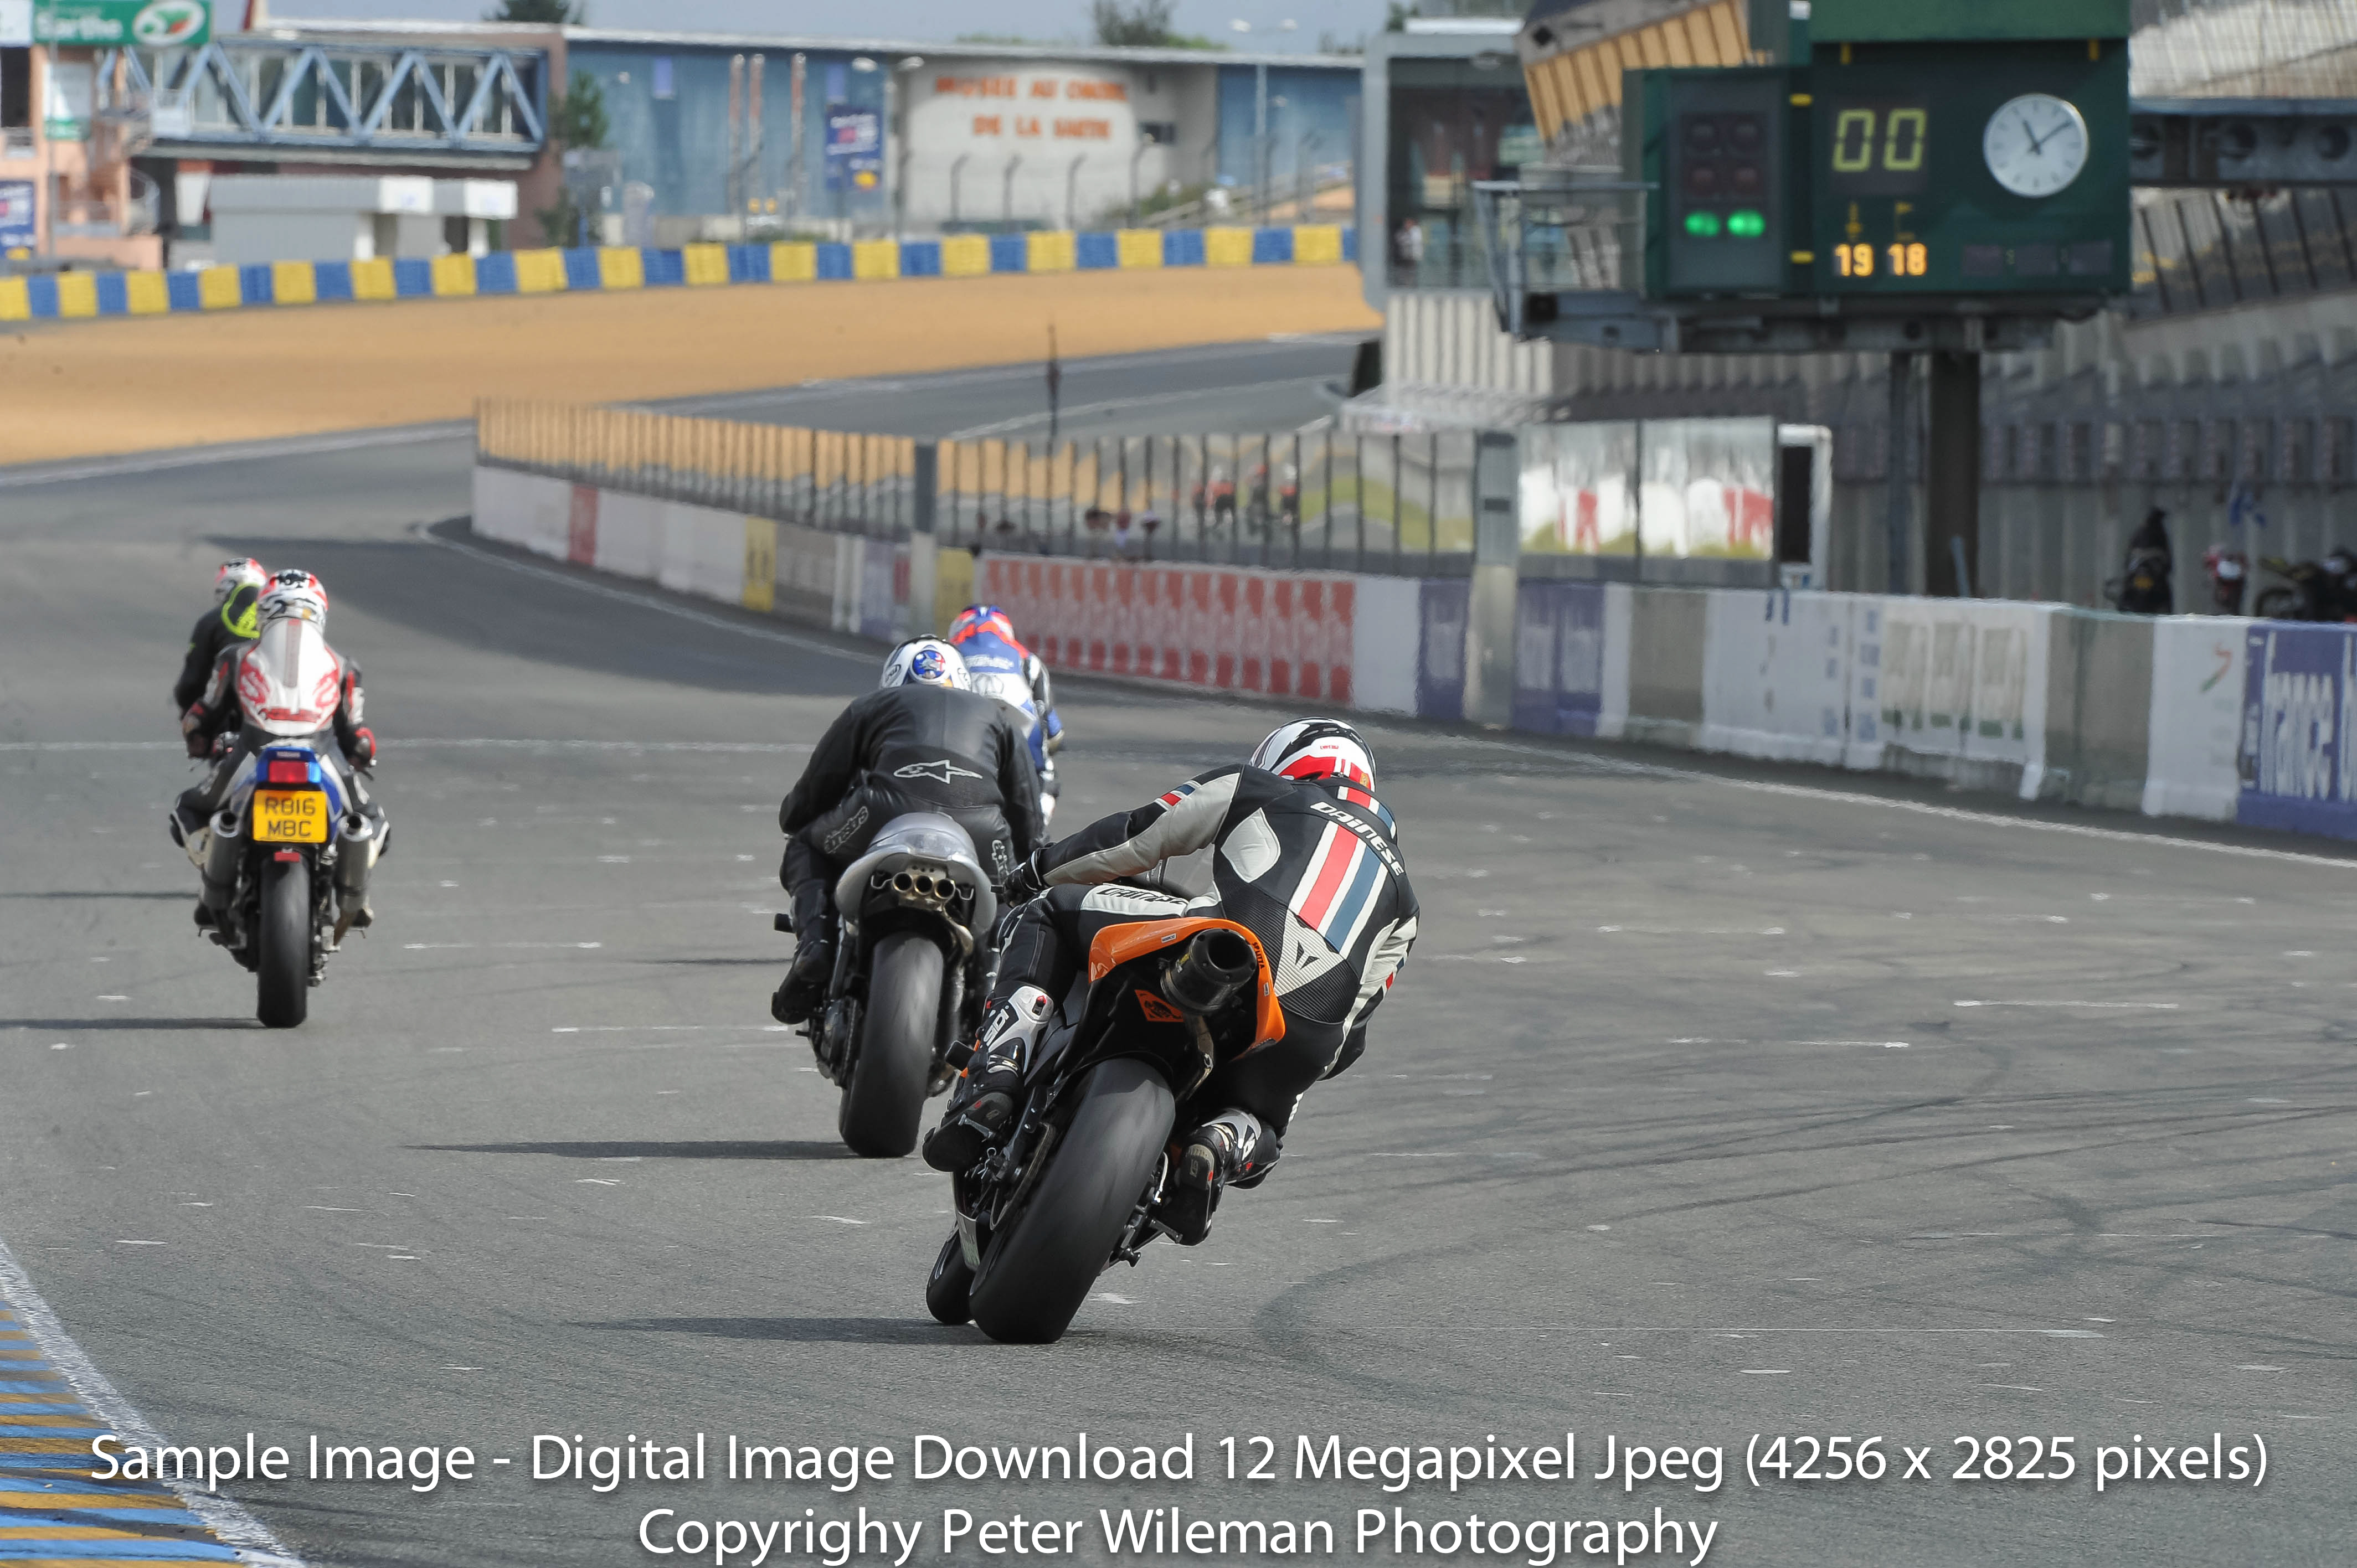 02-08-2012 le mans no limits trackday - trackday digital images